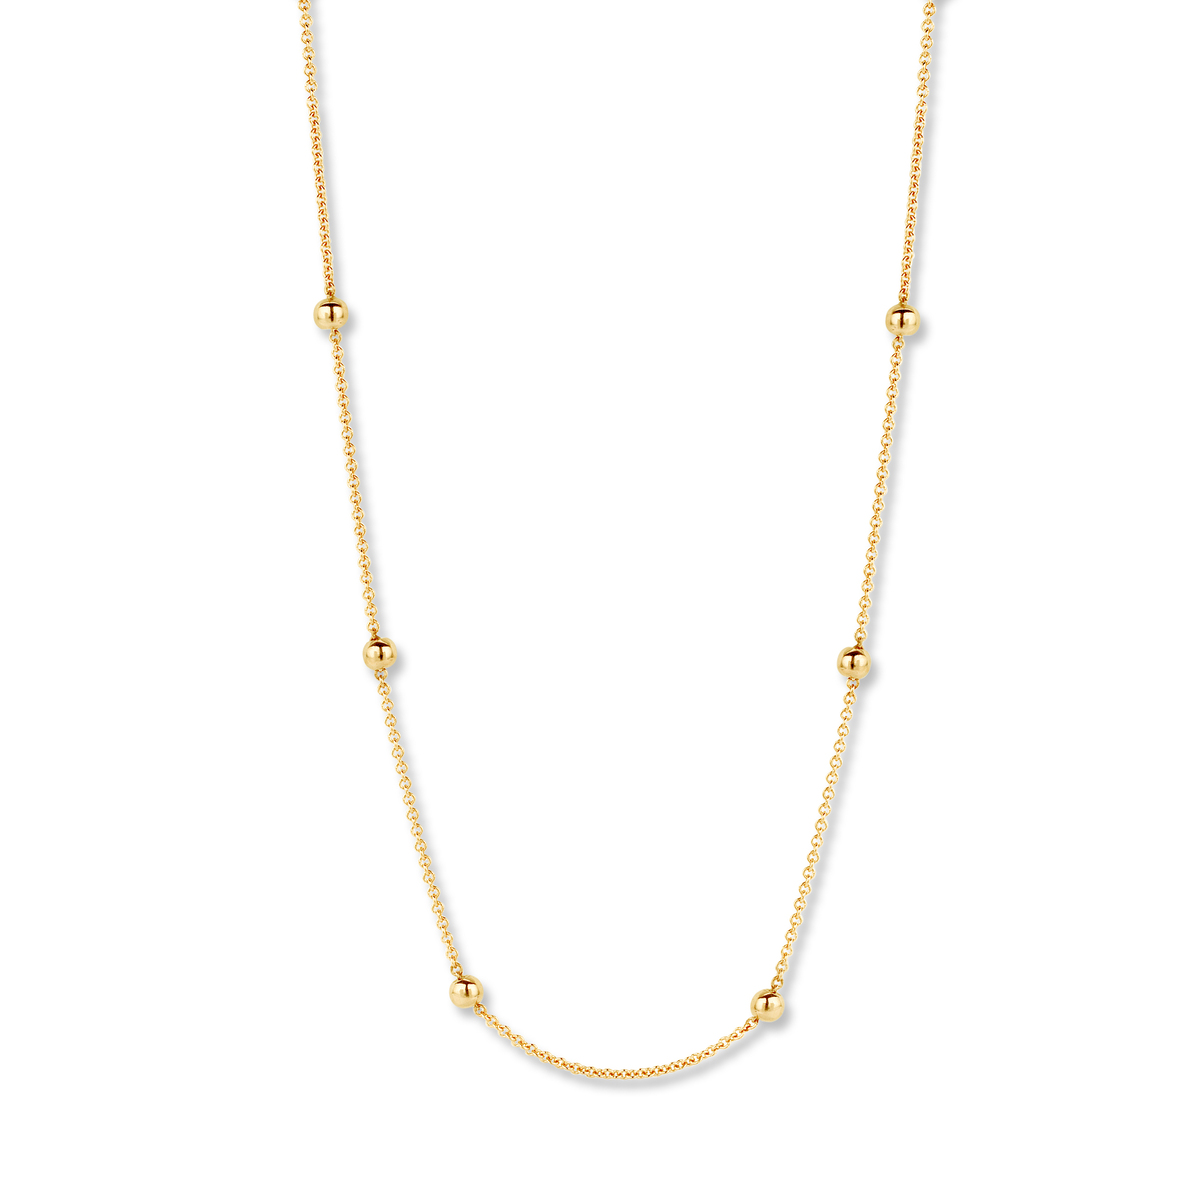 pantelleria necklace in yellow gold